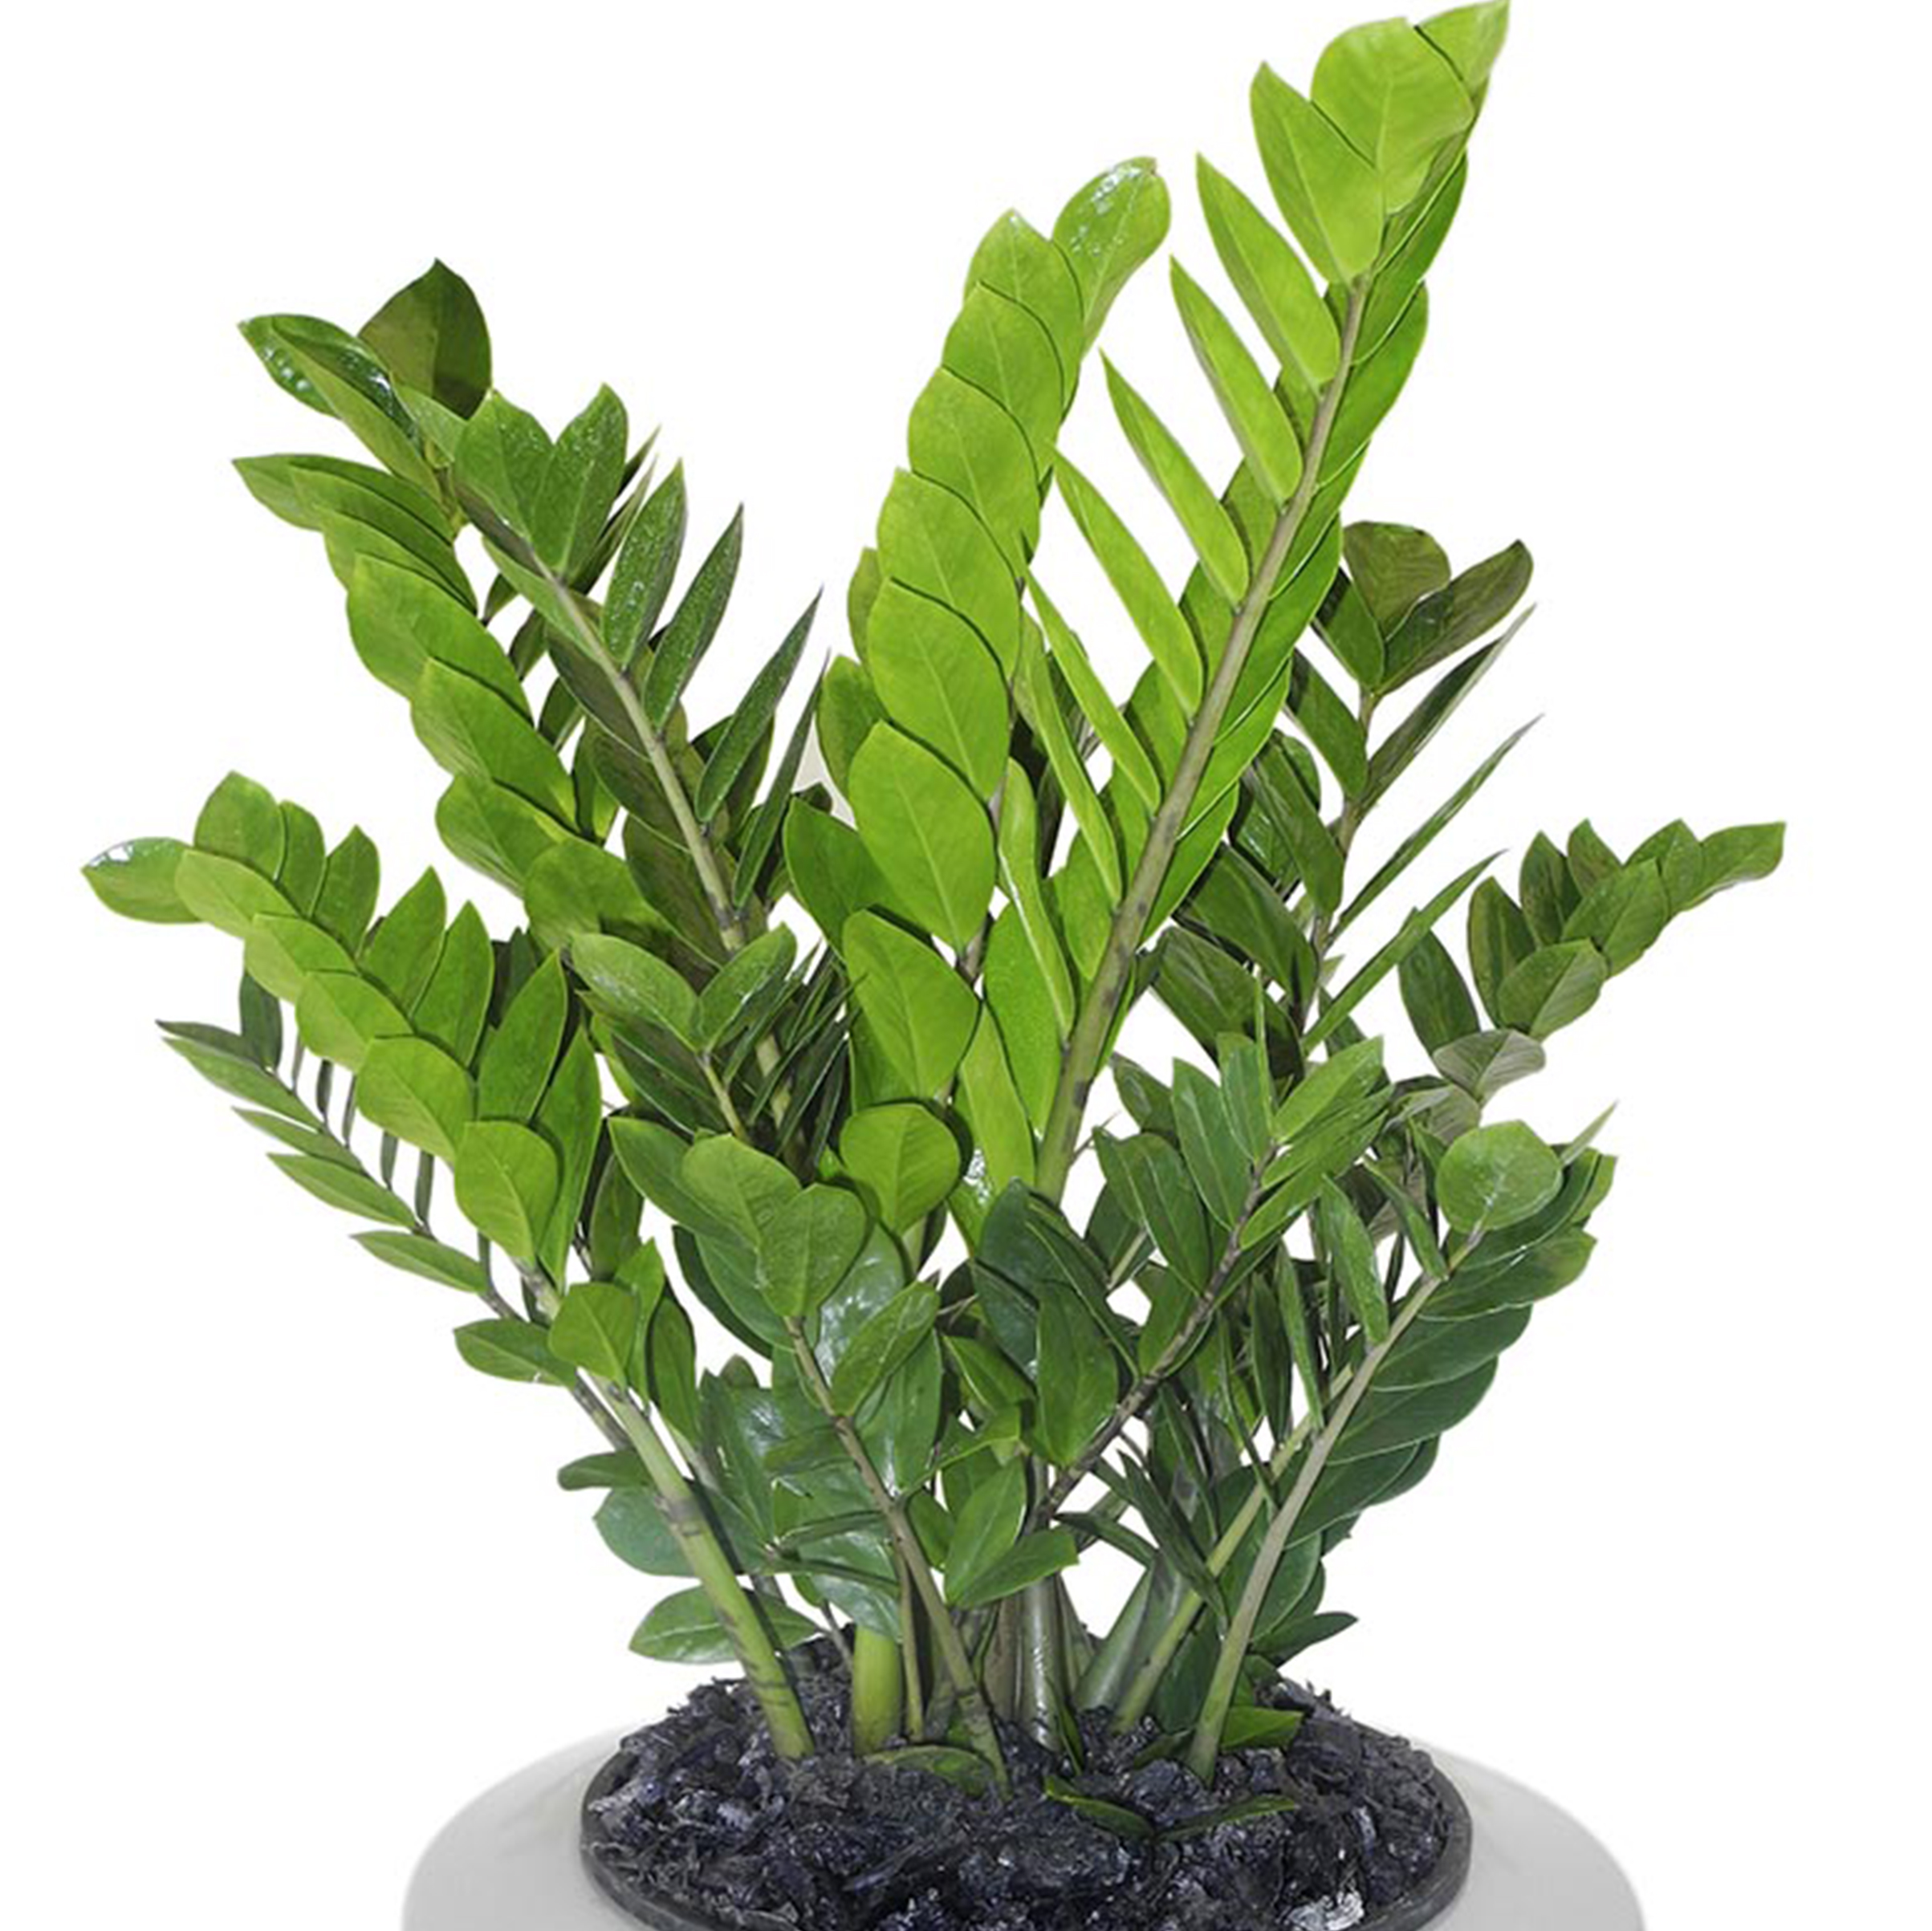 ZZ Plant - ZZ Plants do not like direct light but does like bright light. They grow similarly to trees and palm plants. ZZ Plants like to dry out a little bit before getting more water so allowing the plant to dry down an inch or two is best. ZZ Plants like well draining soil similar to succulent and cactus soil. * Zamioculcas Zamiifolia*Information from House Plants Experts